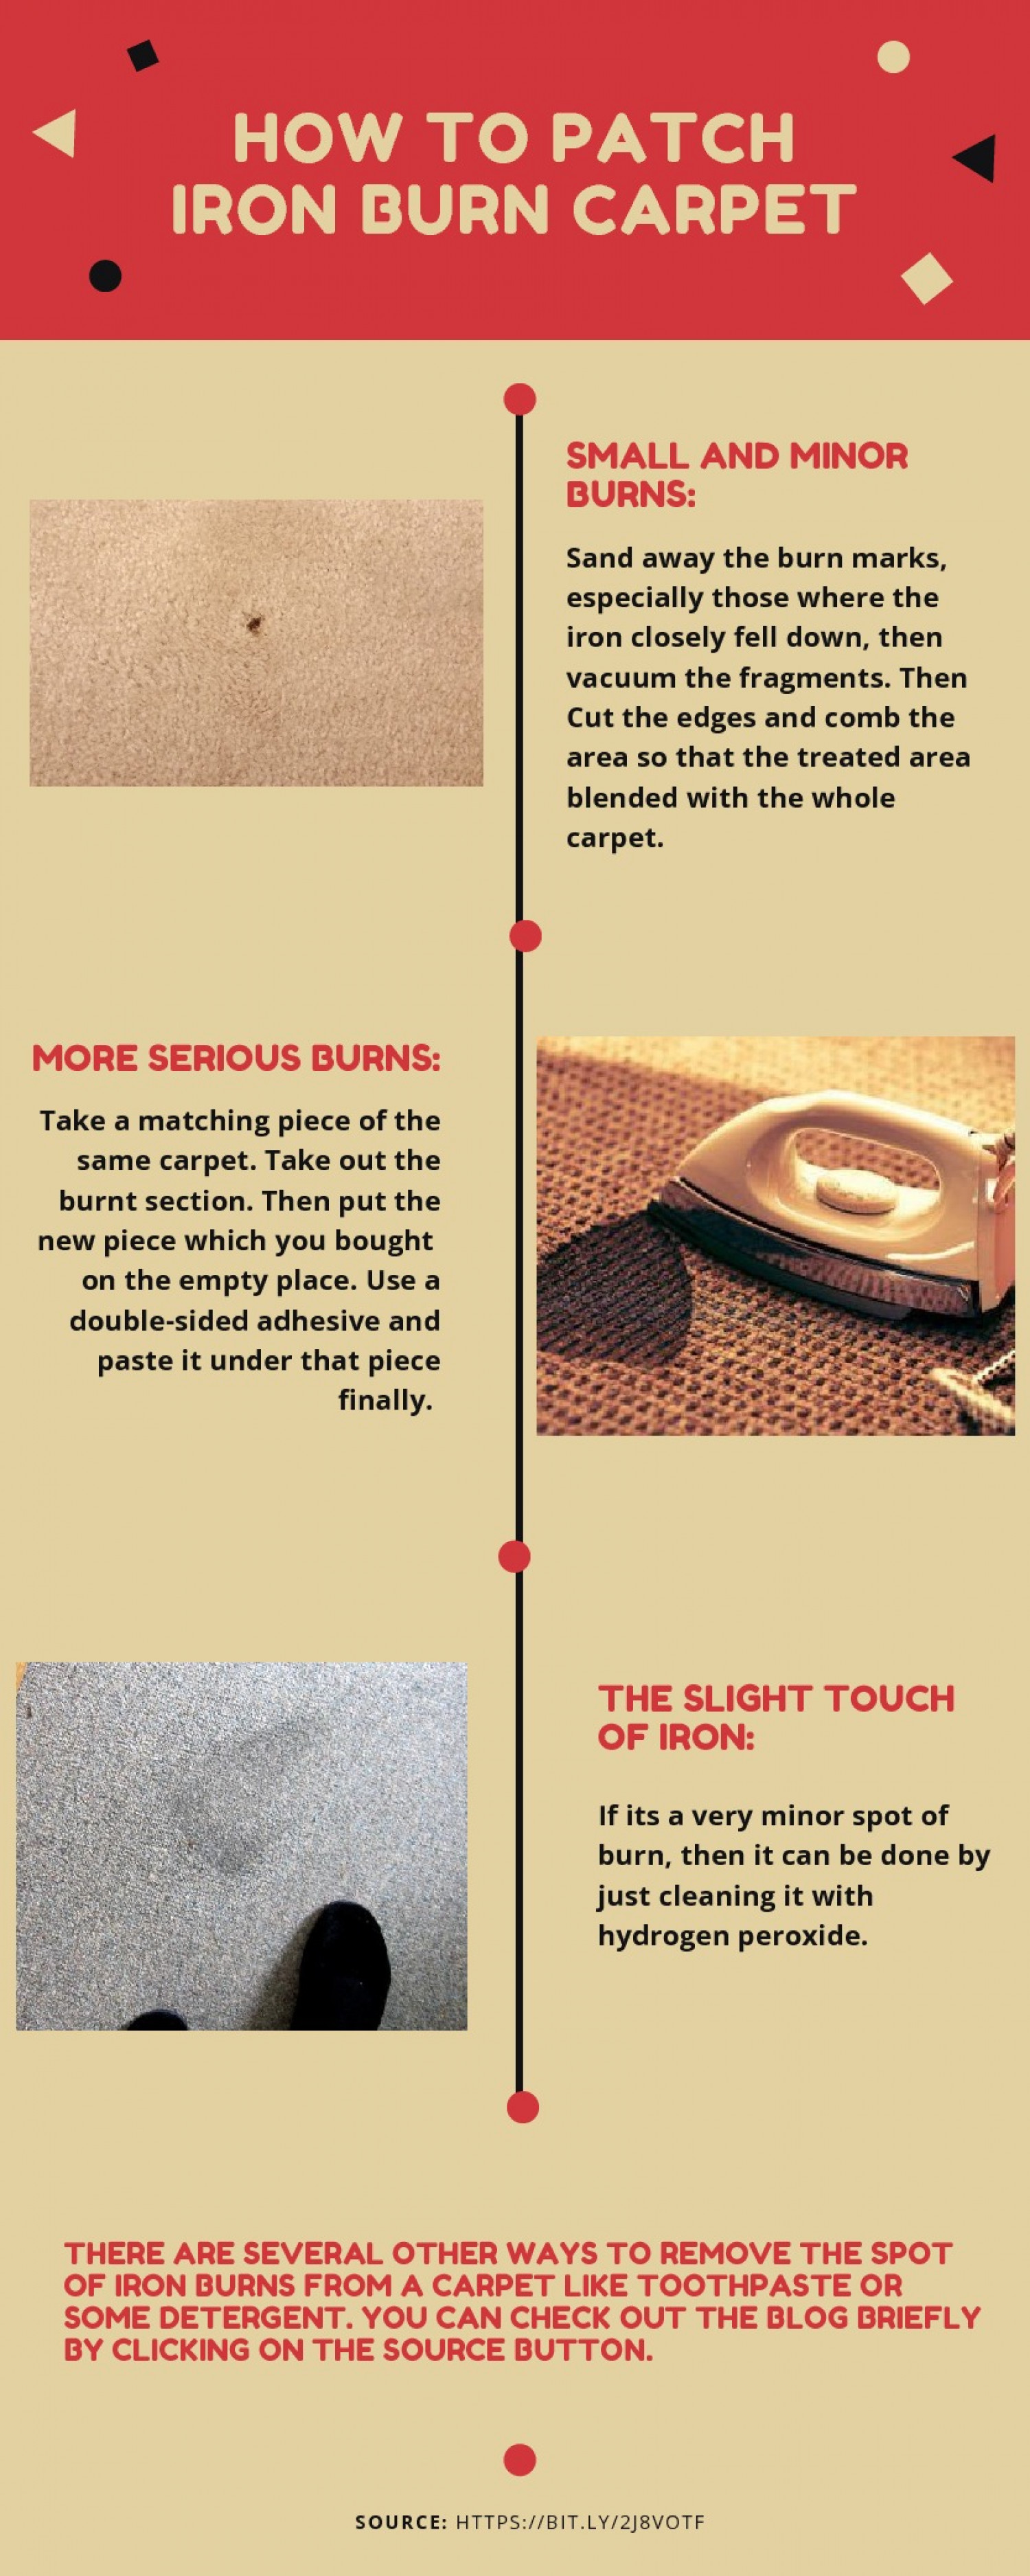 How to Patch Iron Burn Carpet Infographic